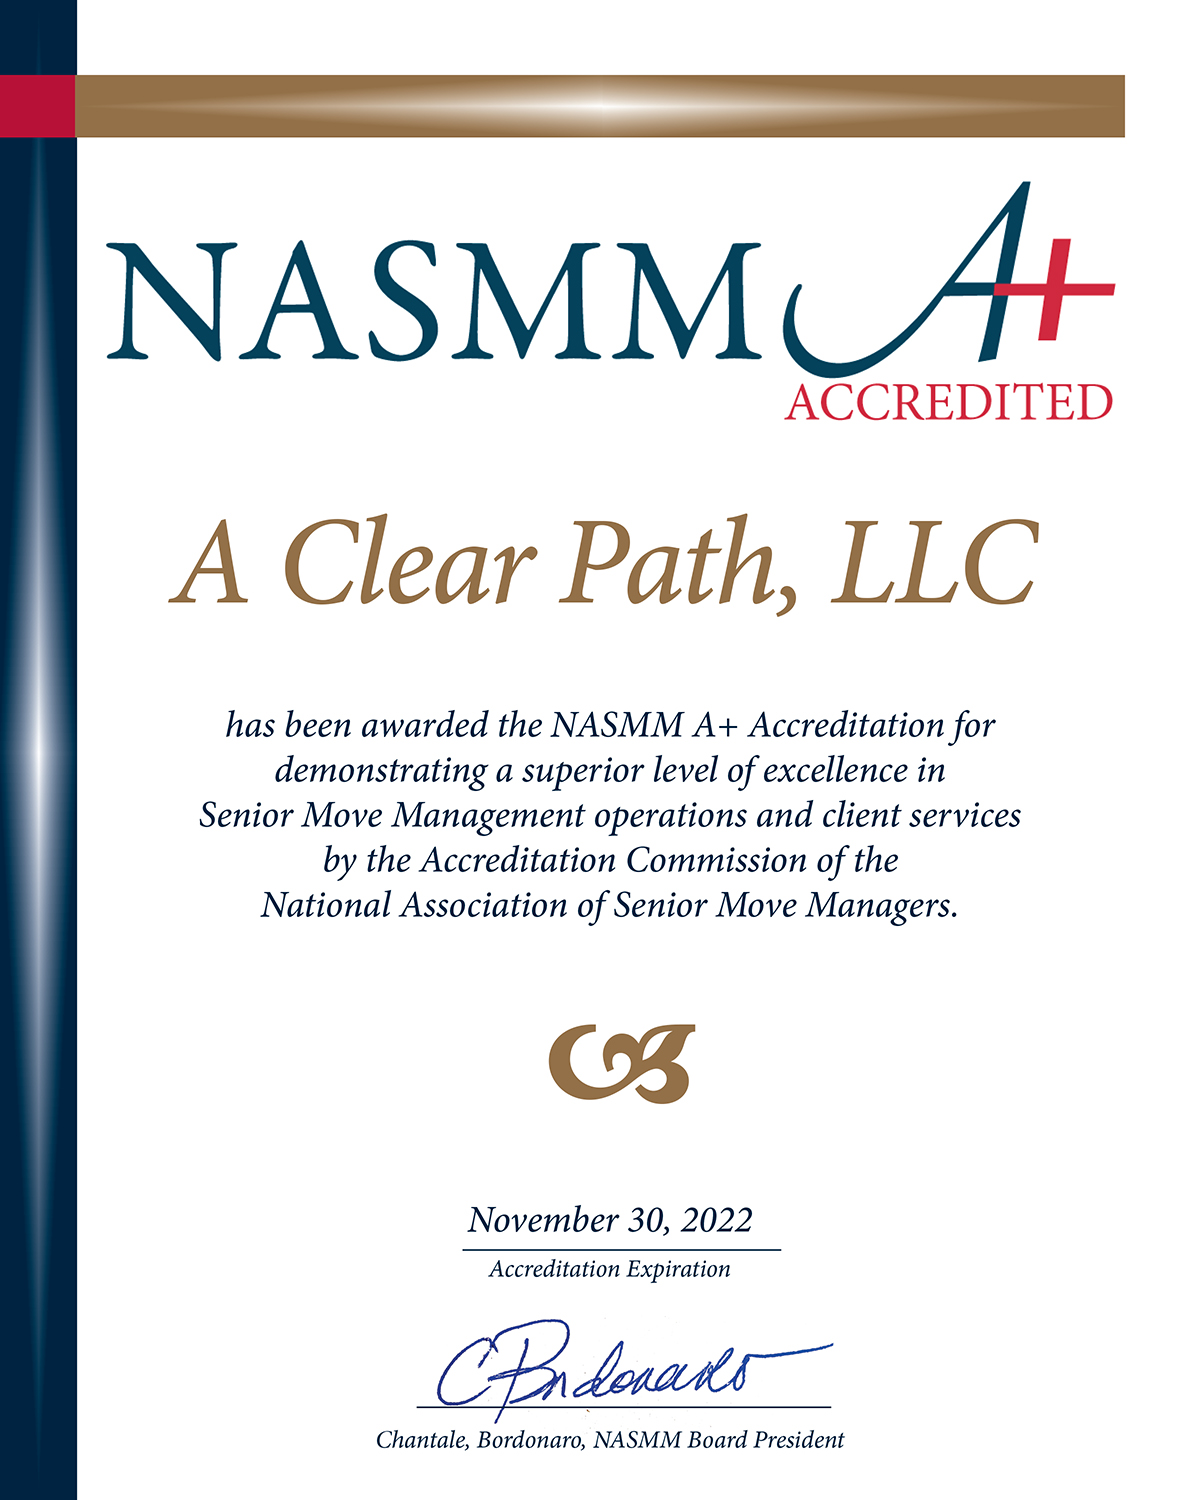 A Clear Path A+ Accredited from the National Association for Senior Move Managers